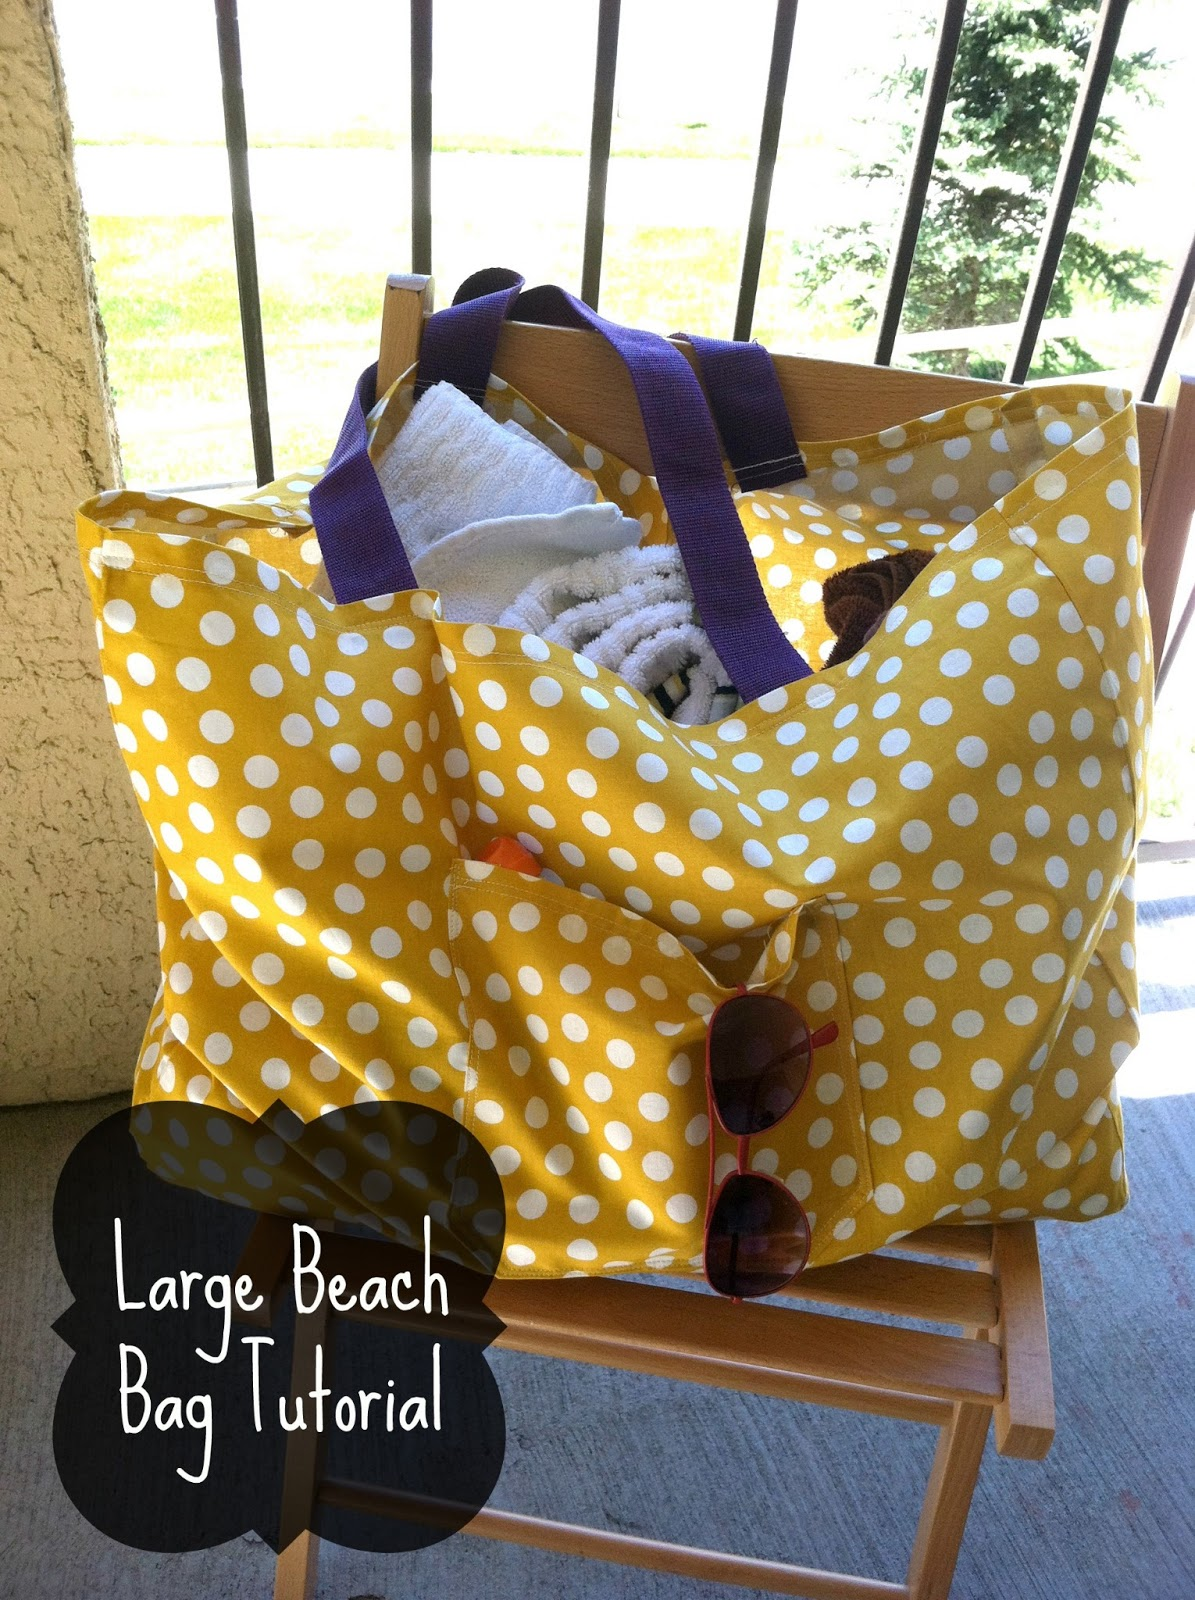 Little miss kims class large beach bag tote tutorial large beach bag tote tutorial jeuxipadfo Gallery